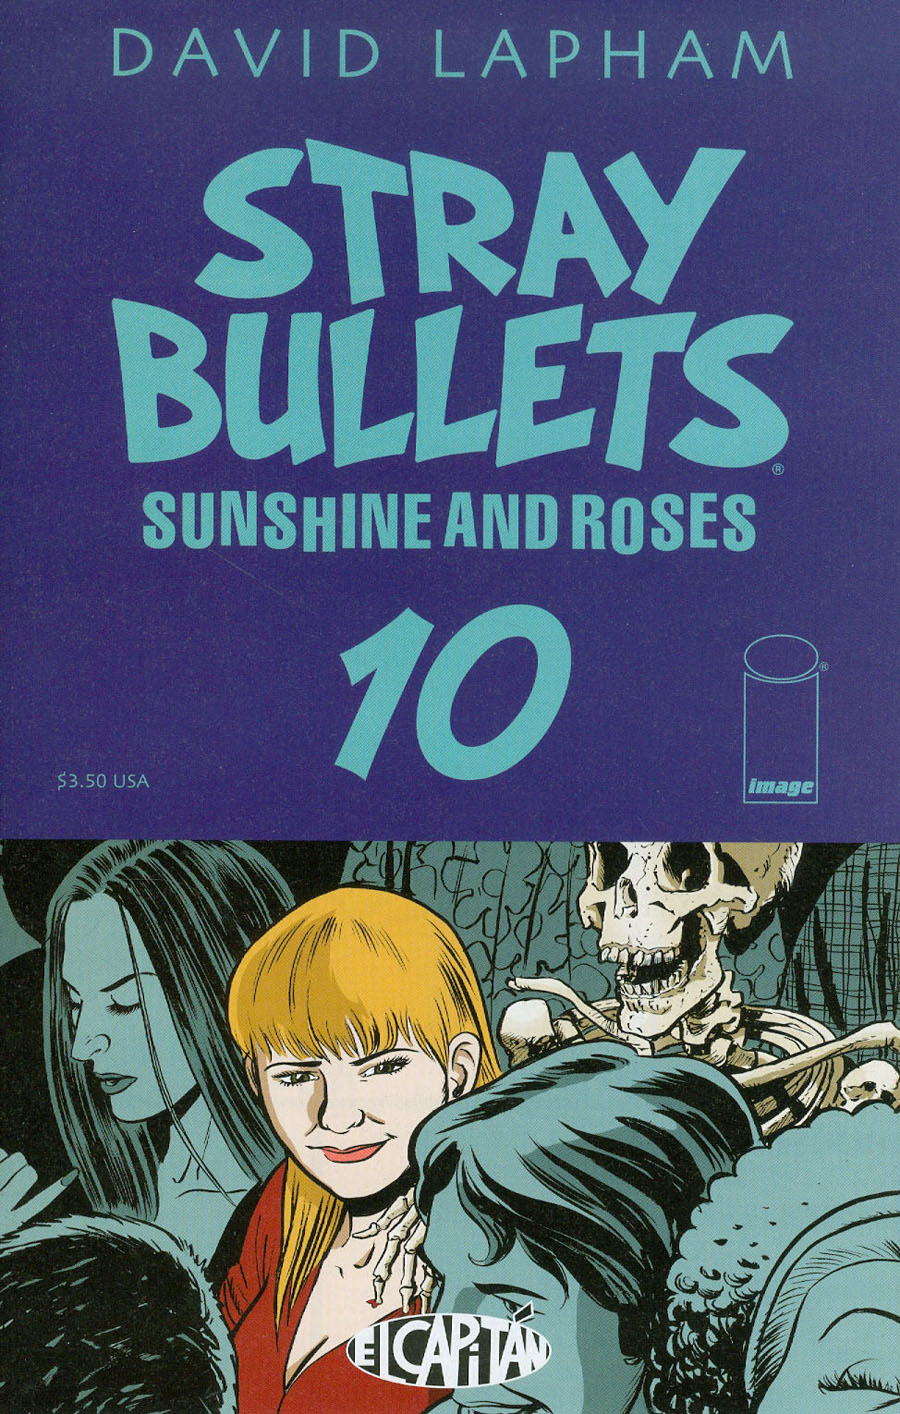 Stray Bullets Sunshine And Roses #10